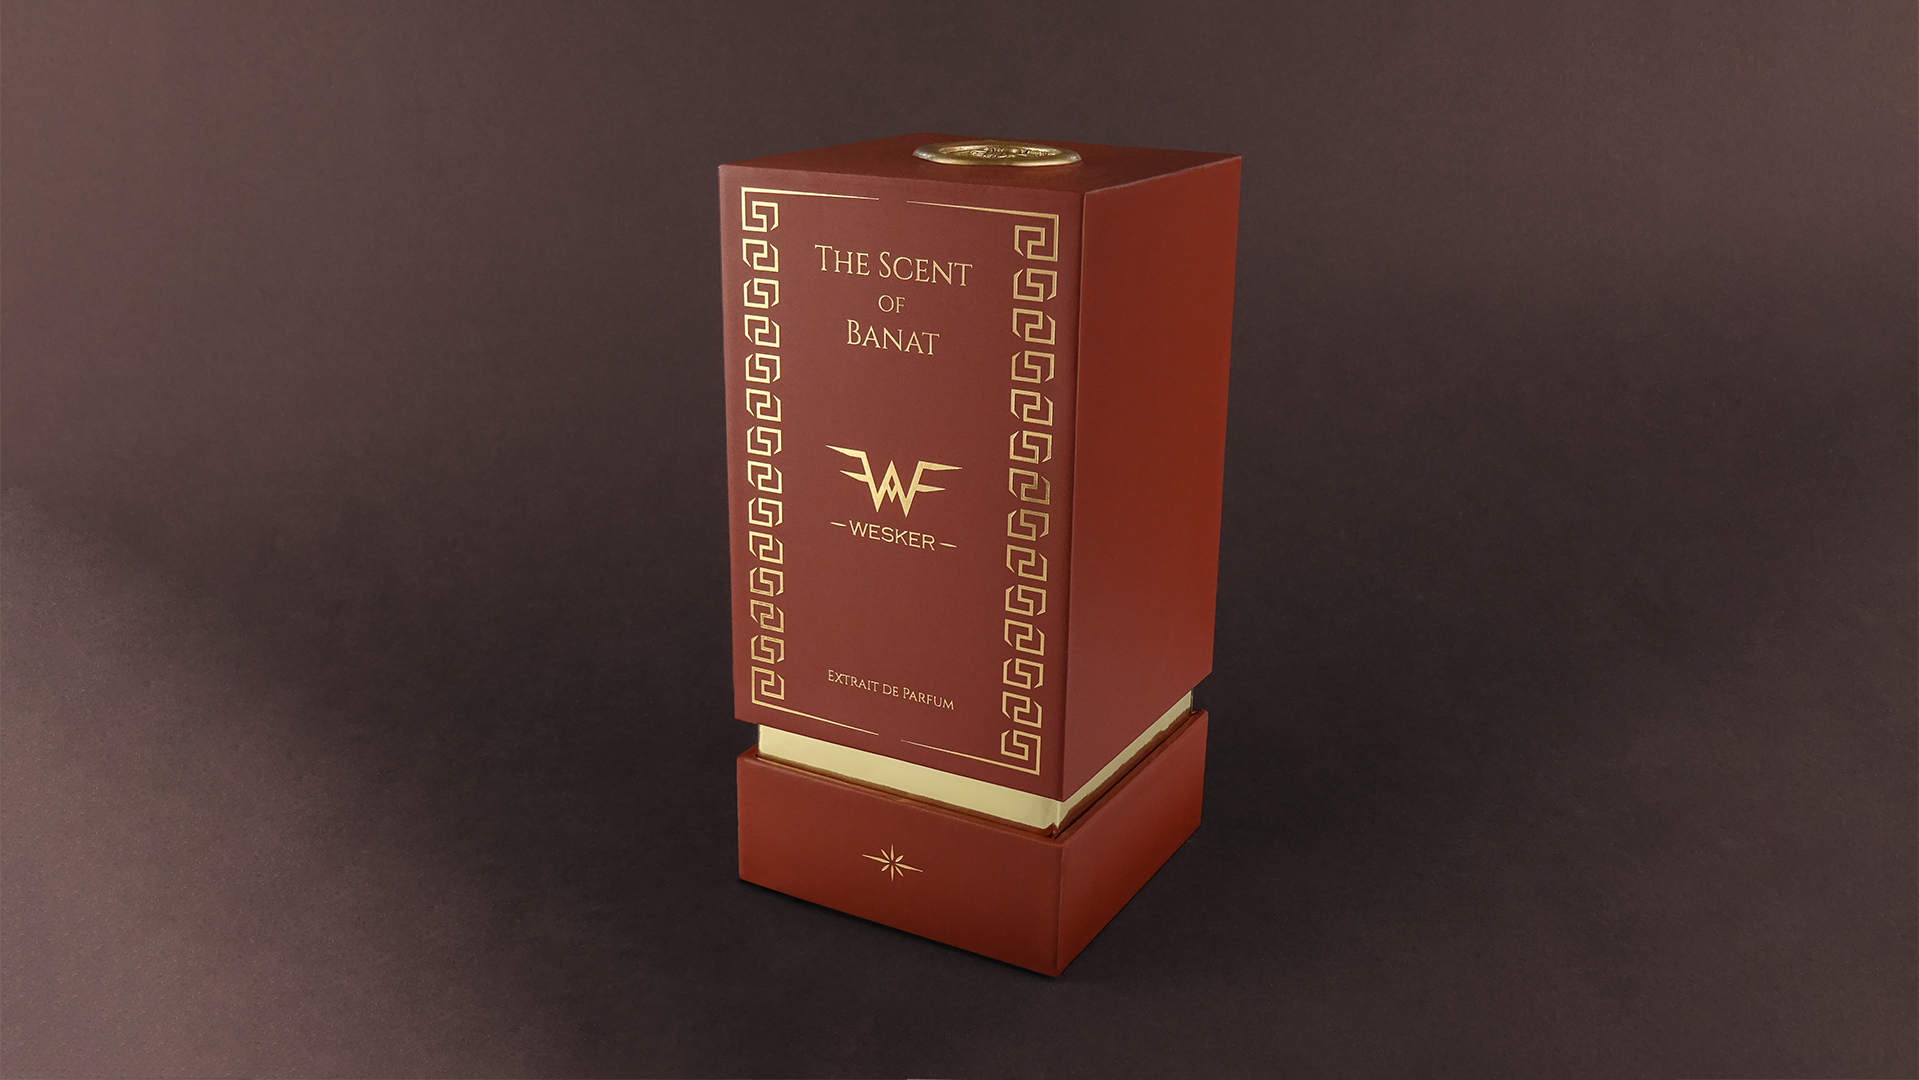 Wesker_The_Scent_of_Banat_Packaging_16x9